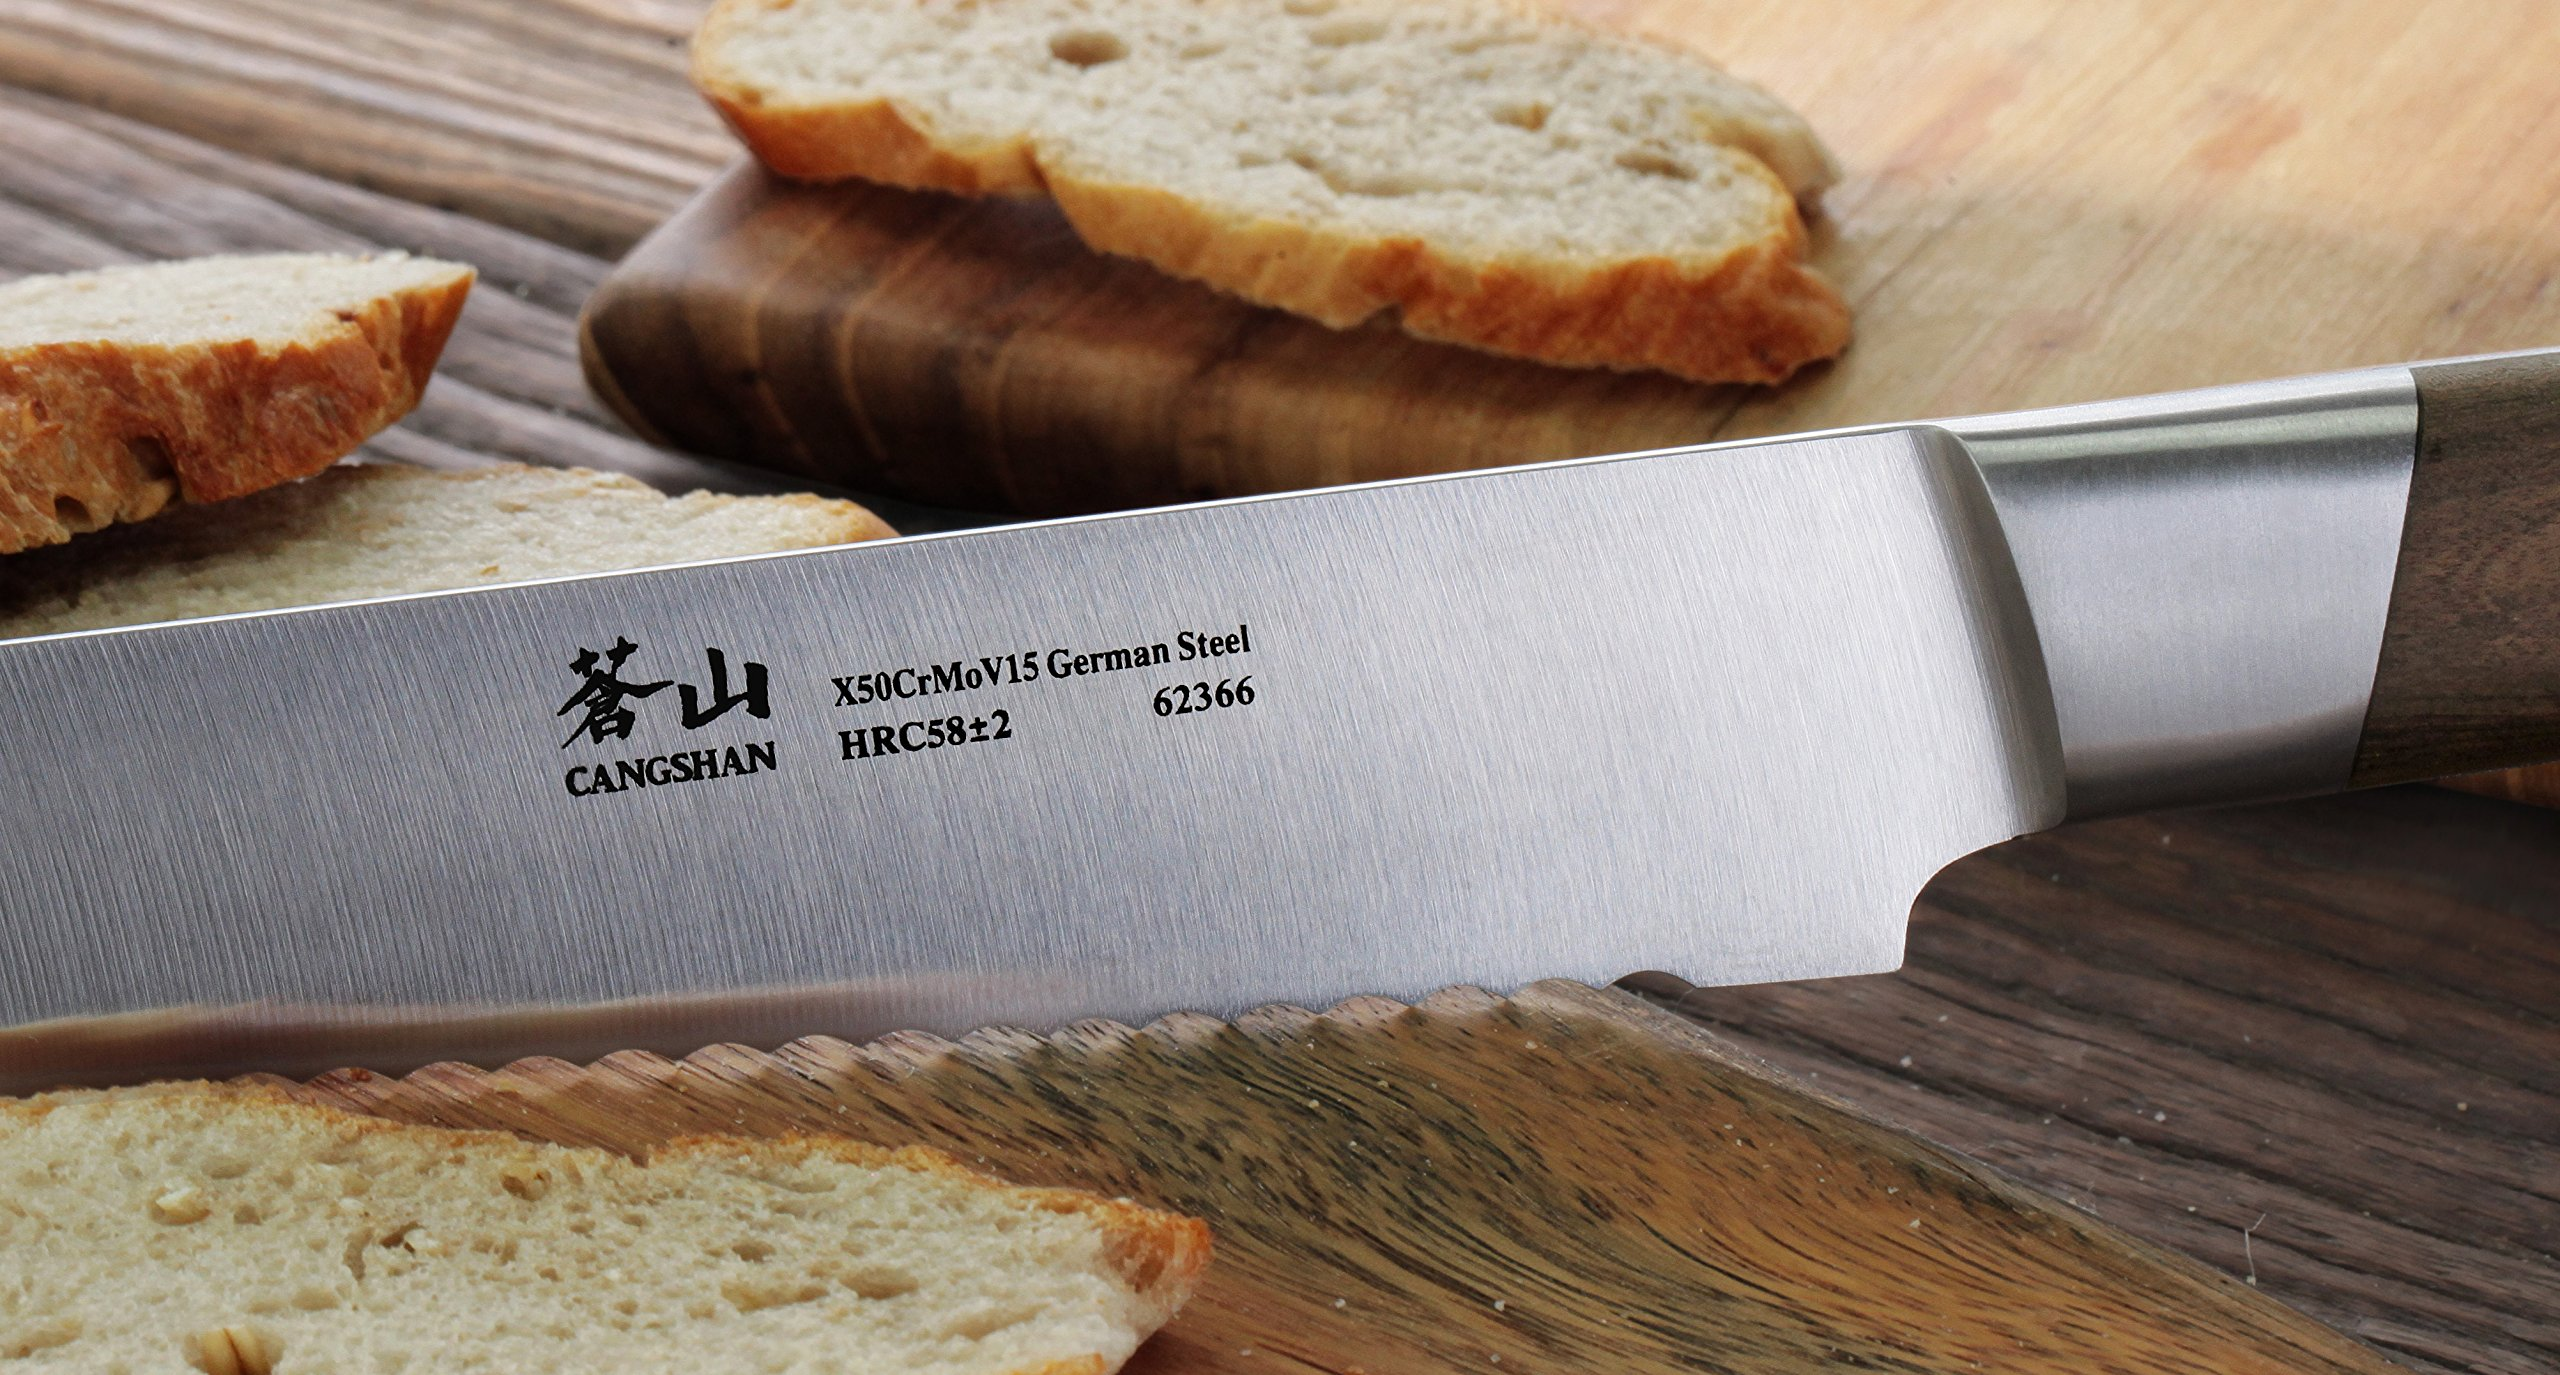 Cangshan R Series 62649 German Steel Forged Bread Knife with Ashwood Sheath, 10.25-Inch 7 Unique patent pending design that focuses on rich ultra-dense African blackwood handle Full tang forged from x50cr15mov german steel with hrc 58 +/- 2 on the rockwell hardness scale 8 in. bread knife perfect for slicing through a types of bread